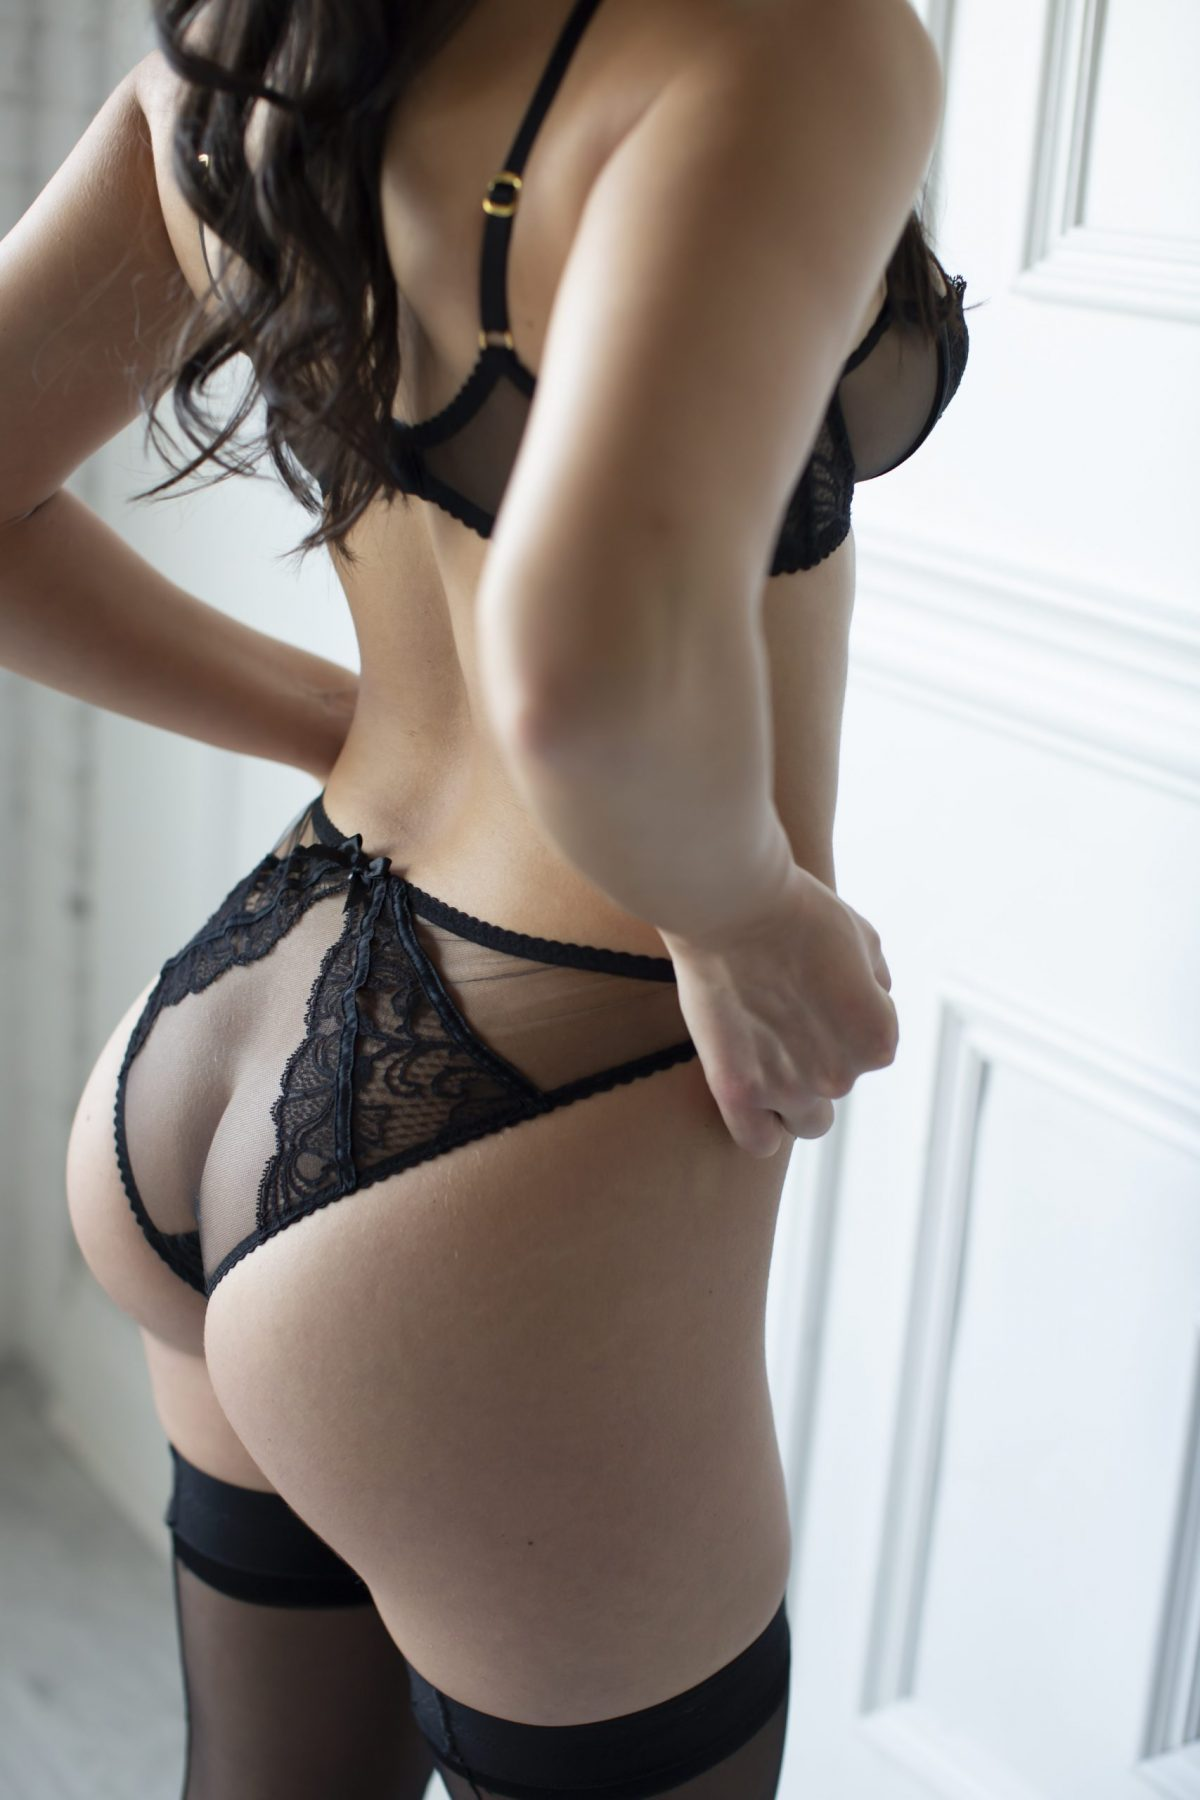 Toronto escorts companion upscale Jacqueline Interests Duo Couple-friendly Non-smoking Age Young Figure Slender Tall Breasts Natural Hair Brunette Ethnicity European Tattoos Small Arrival Returning